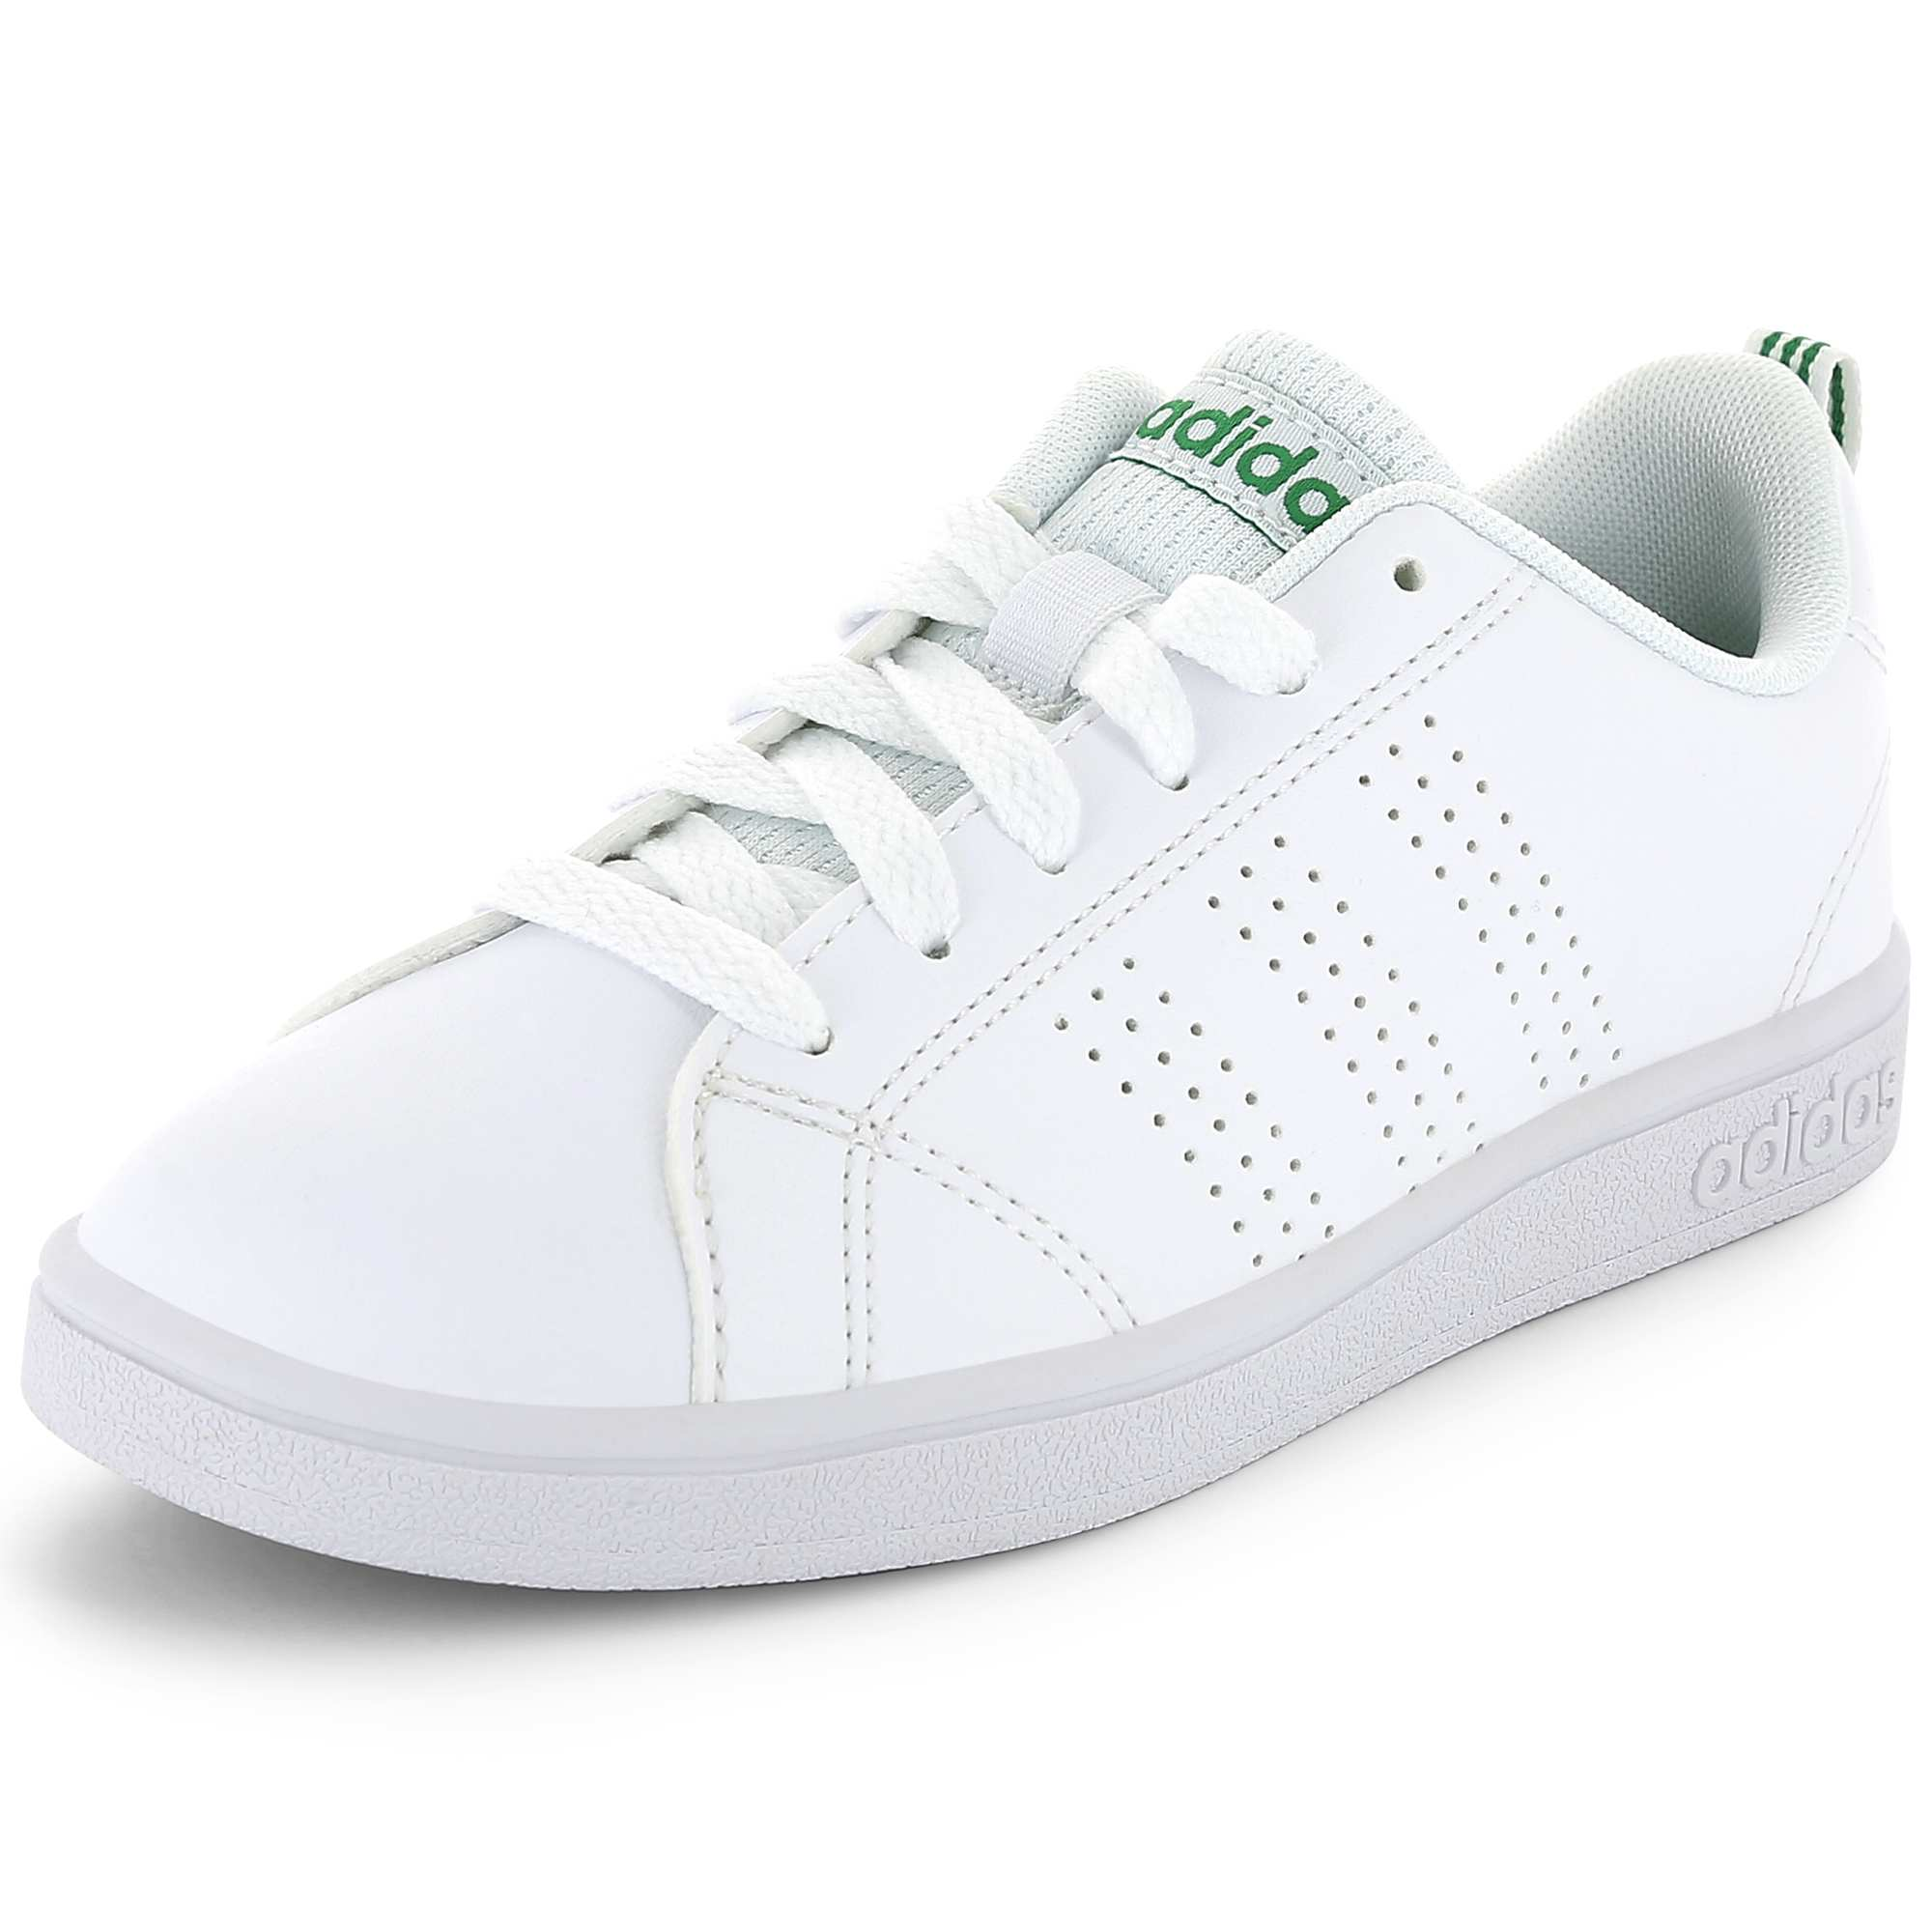 79c283037 Baskets 'Adidas Vs Advantage Clean' blanc Garçon adolescent. Loading zoom